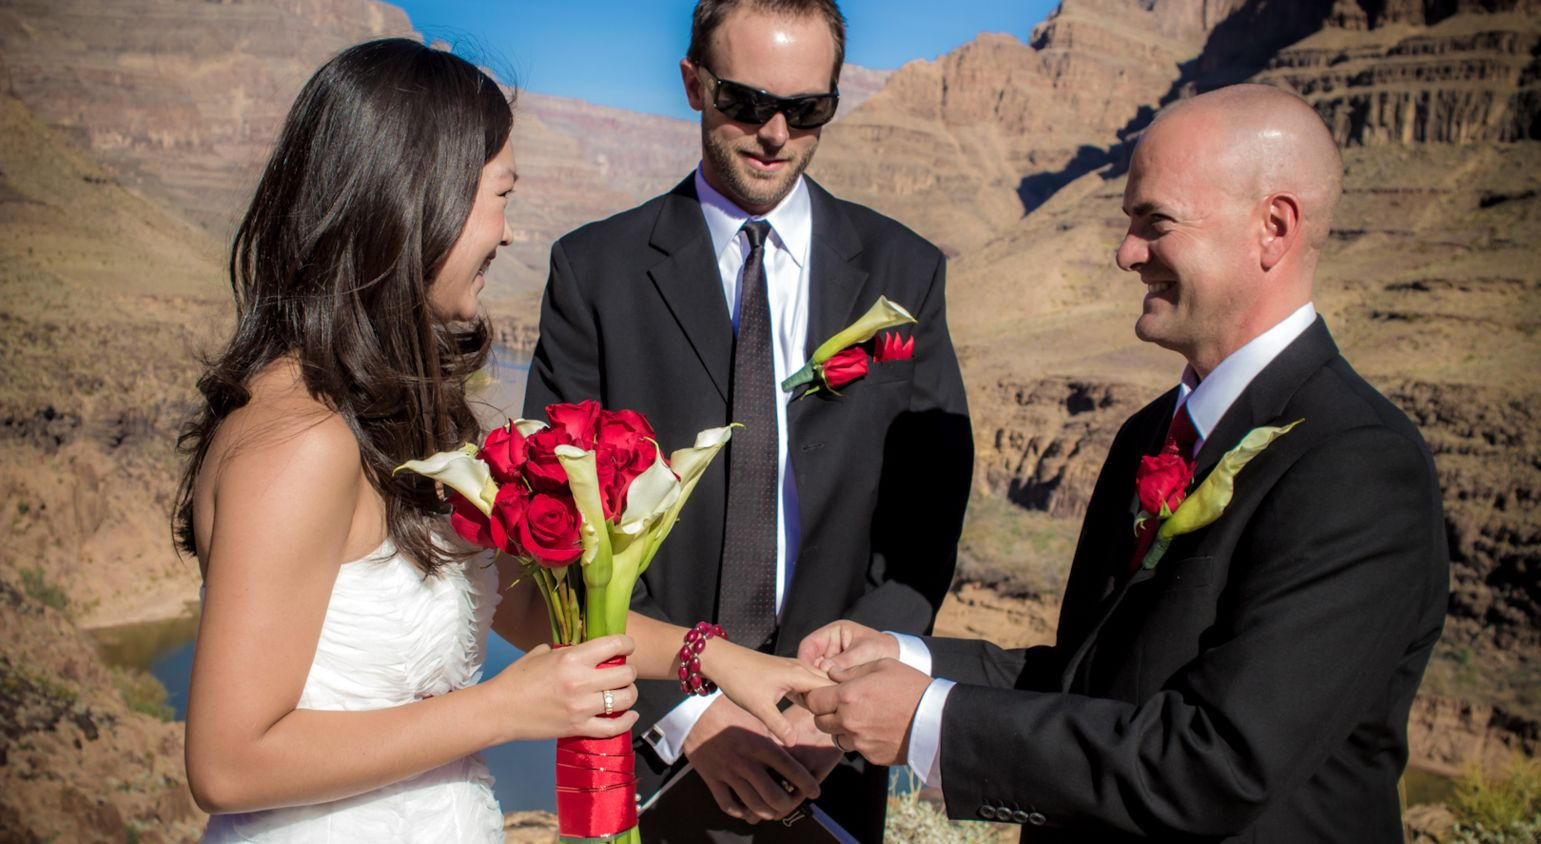 A bride and groom get married on the floor of the Grand Canyon West Rim.